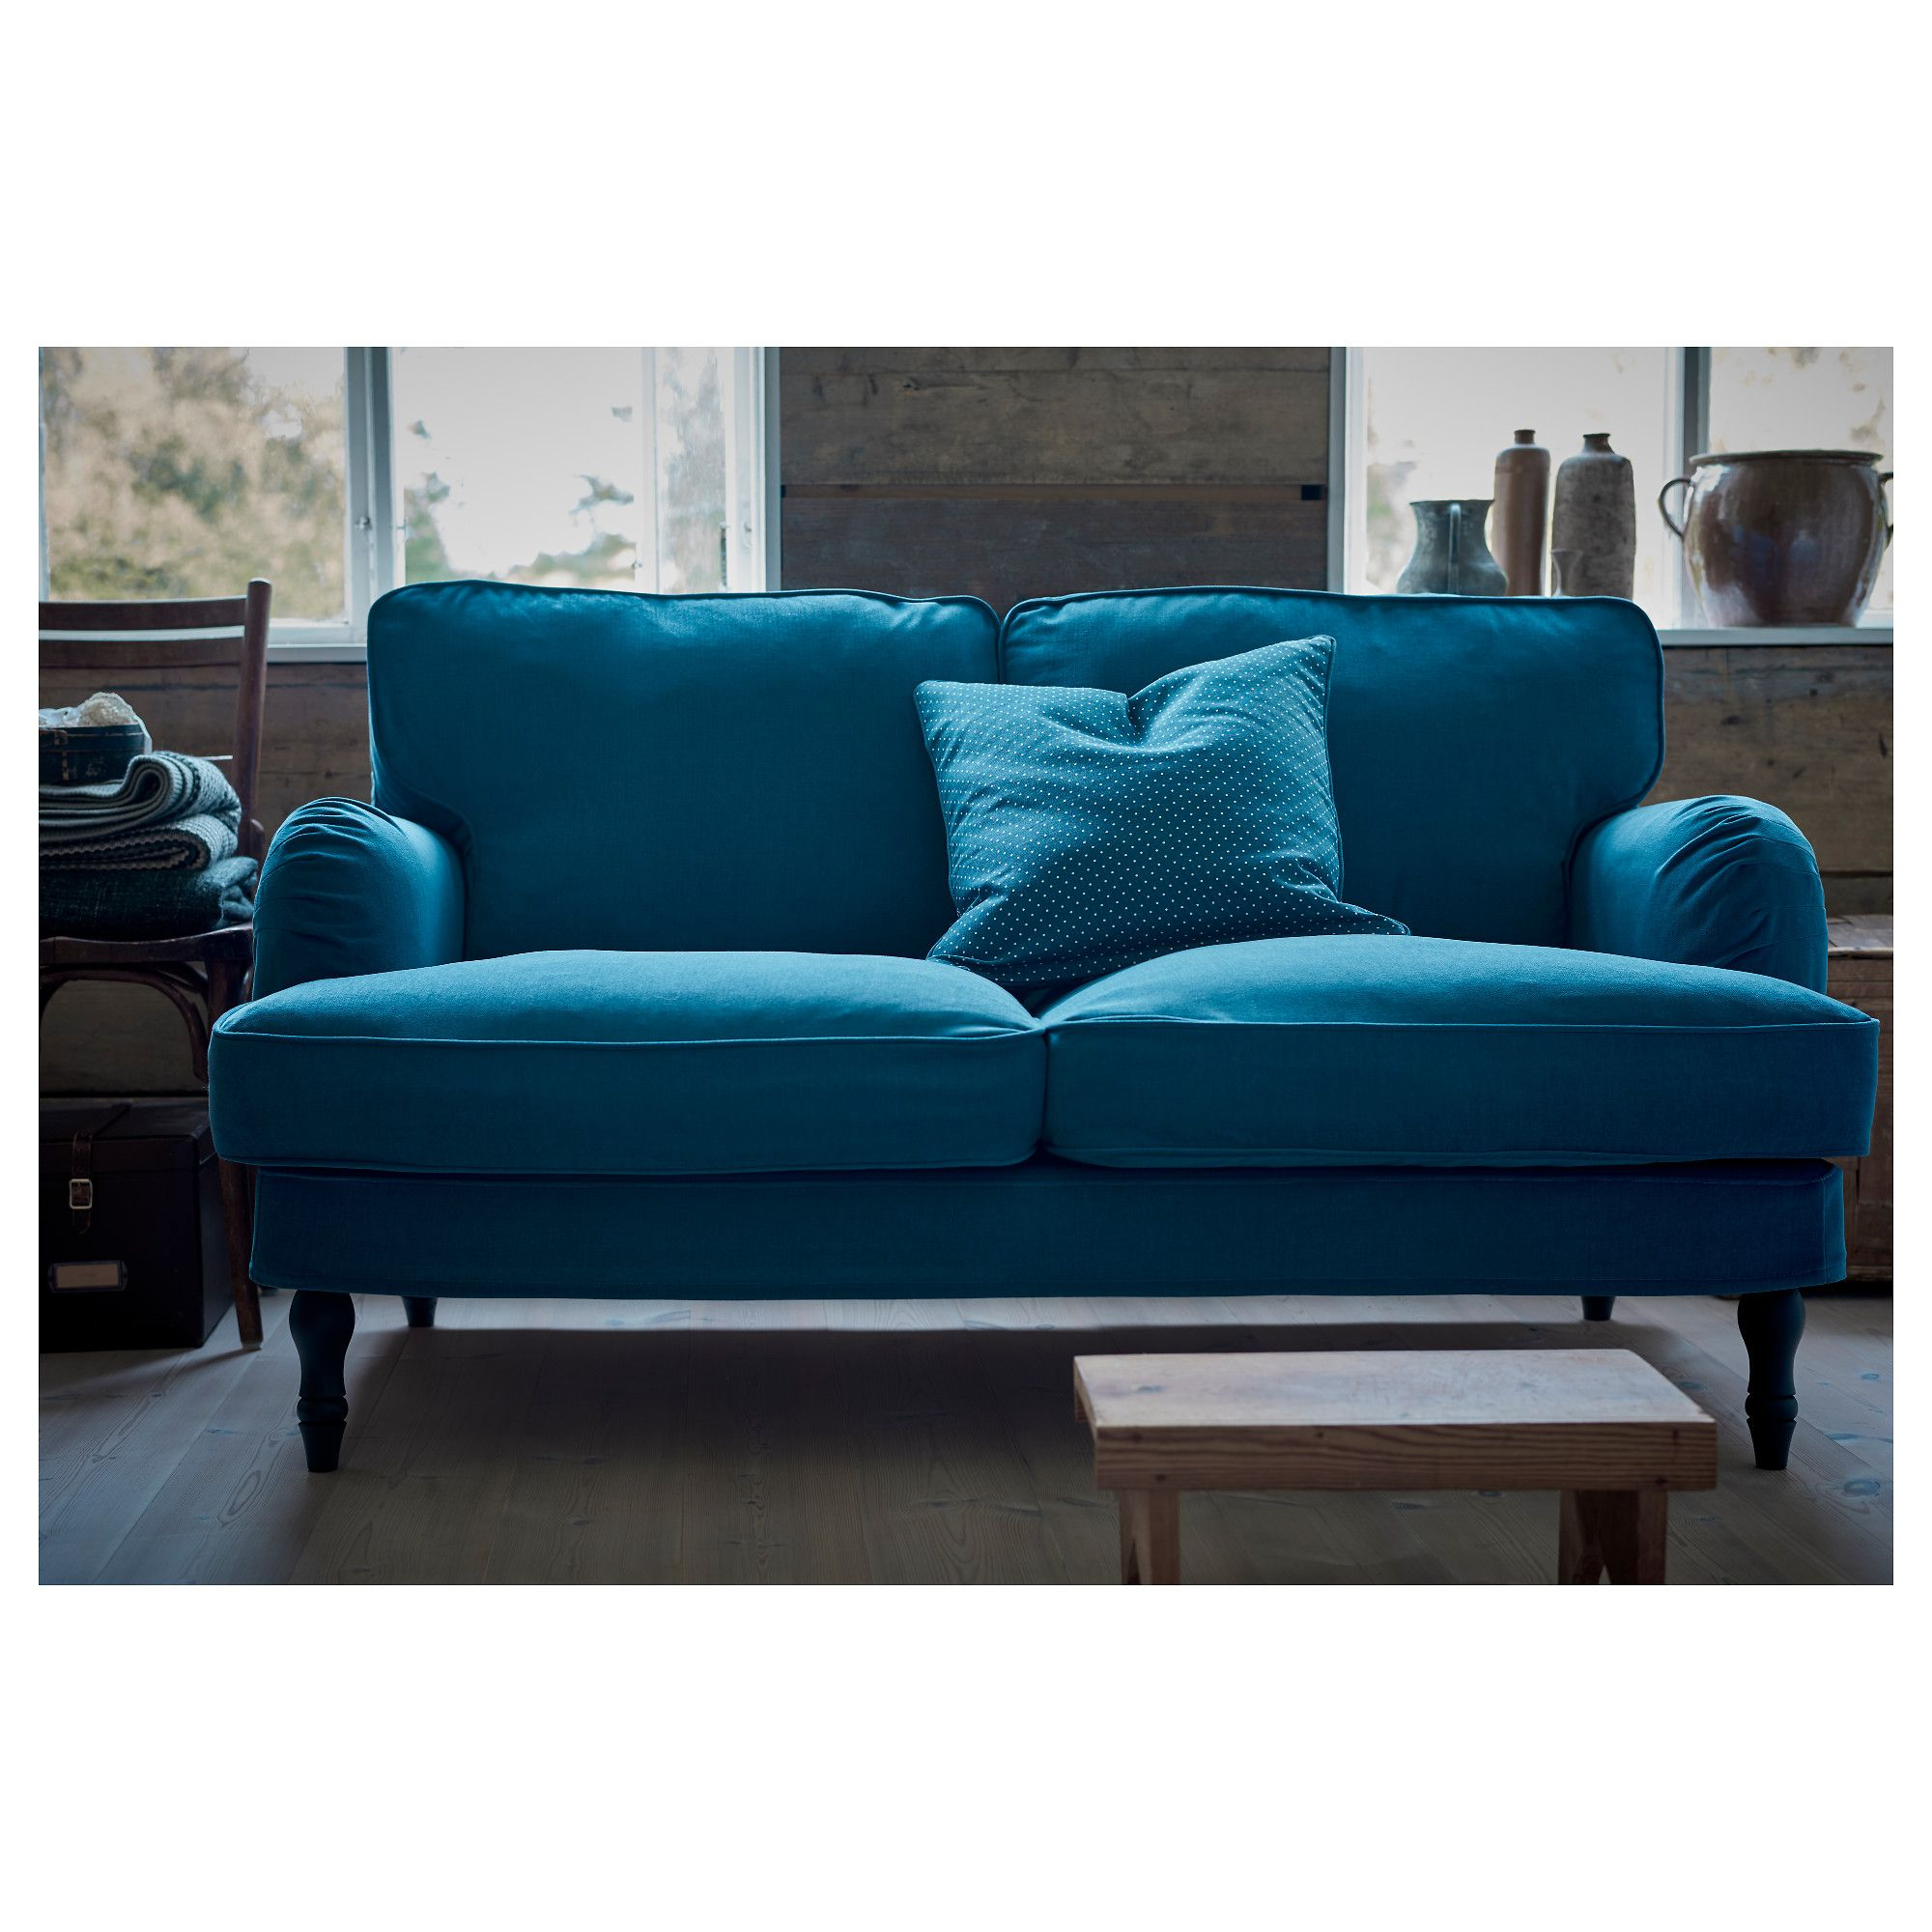 Furniture And Home Furnishings Products In 2019 Ikea